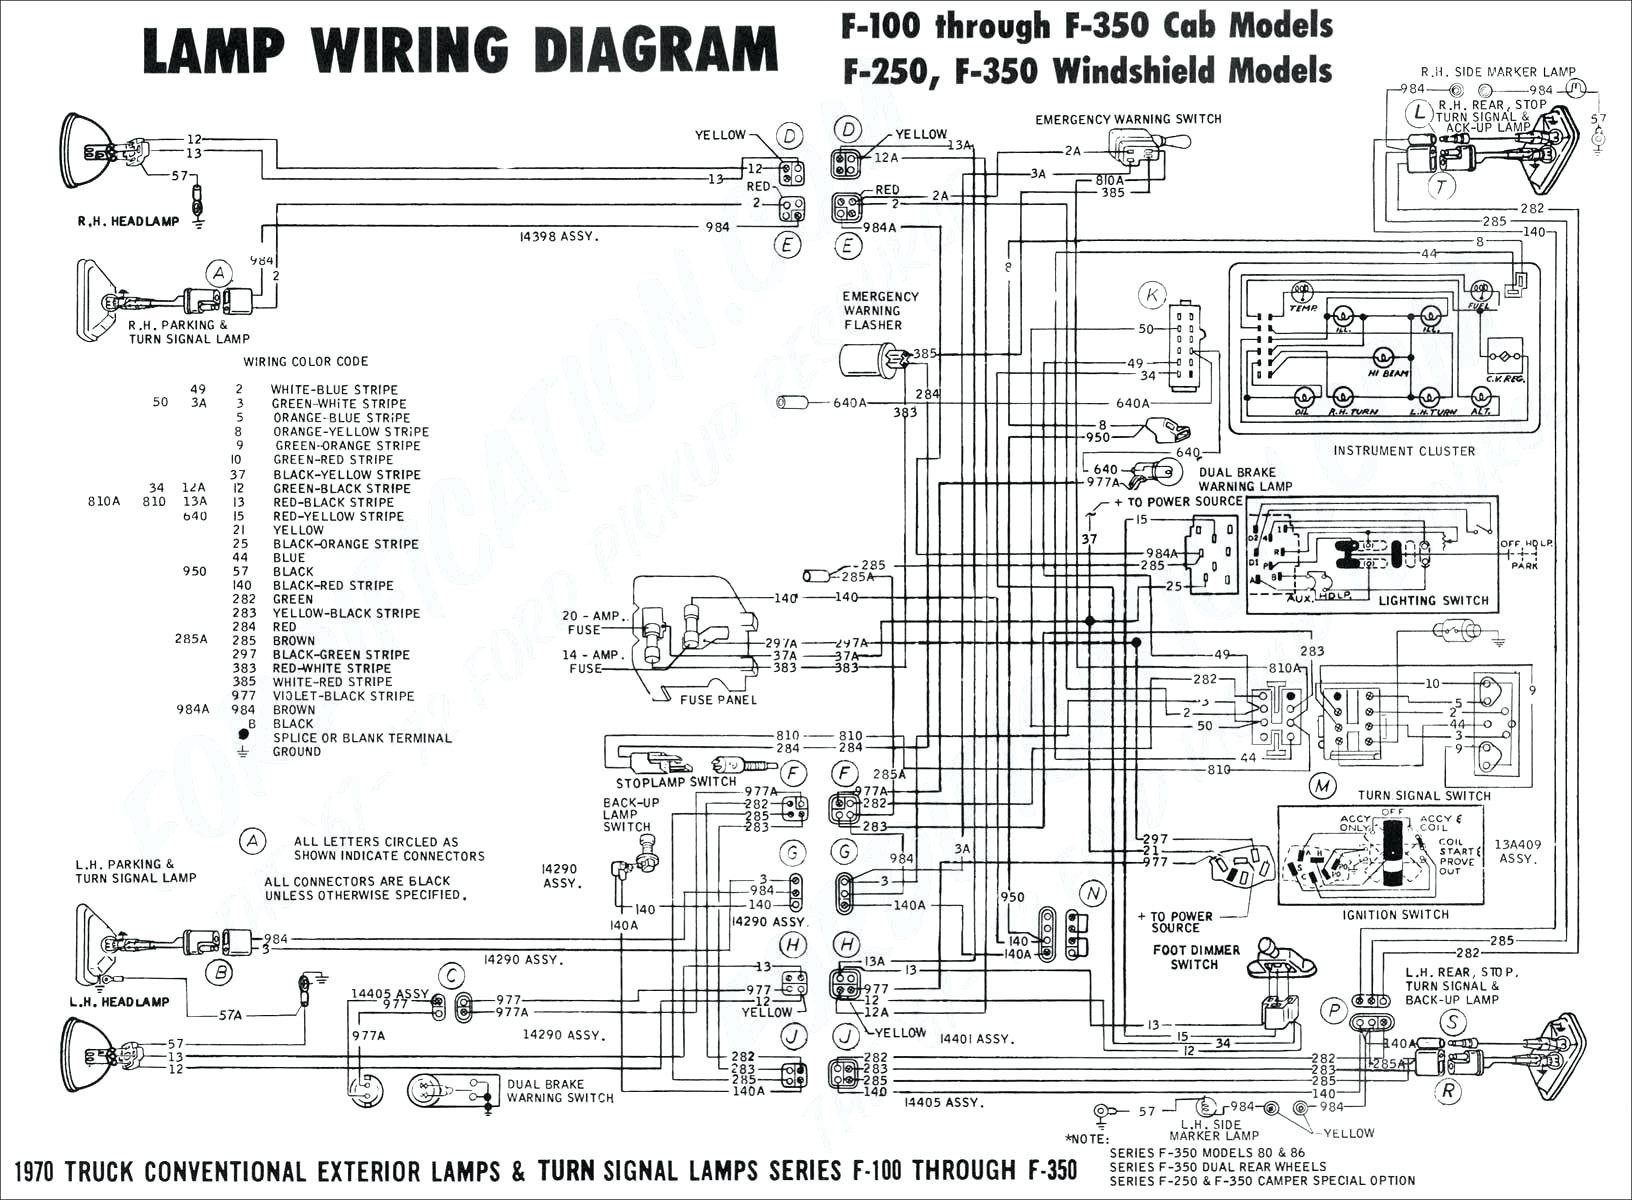 Wiring Diagram for 1970 Jd 4020 Pumptrol Wiring Of Wiring Diagram for 1970 Jd 4020